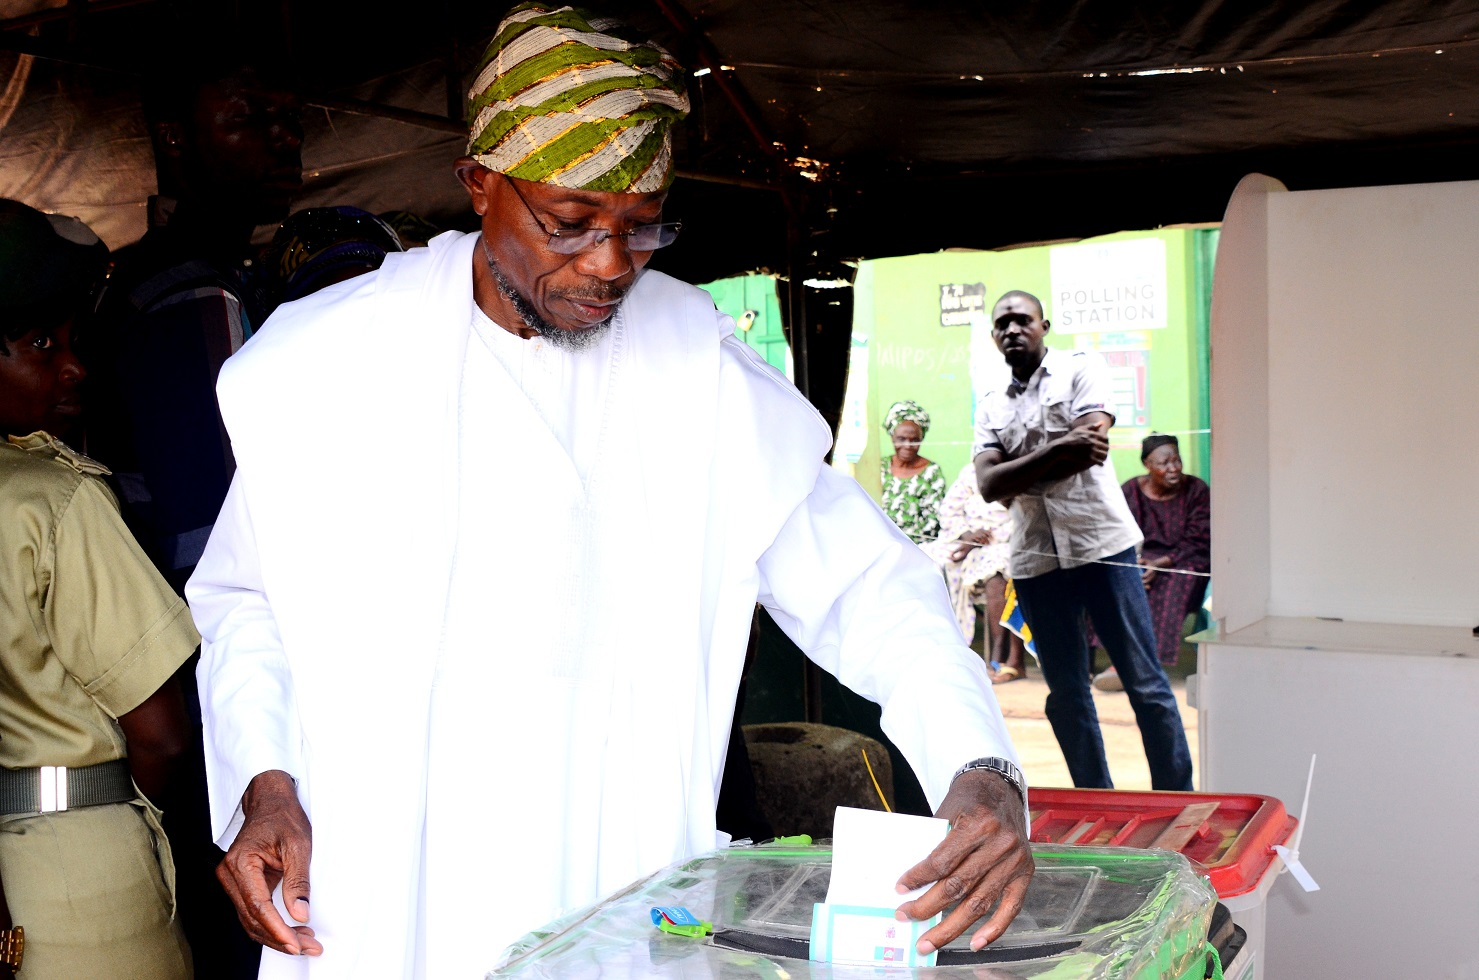 South west ccordinator, Buhari/Osibajo Presidential Campaign, Governor Rauf Aregbesola casting his vote at  Unit 4, Ward 8, Ifofin, Ilesa East Local Government Area, State of Osun, during the Presidential and National Assemblies Elections,on Saturday, 28/03/2015.